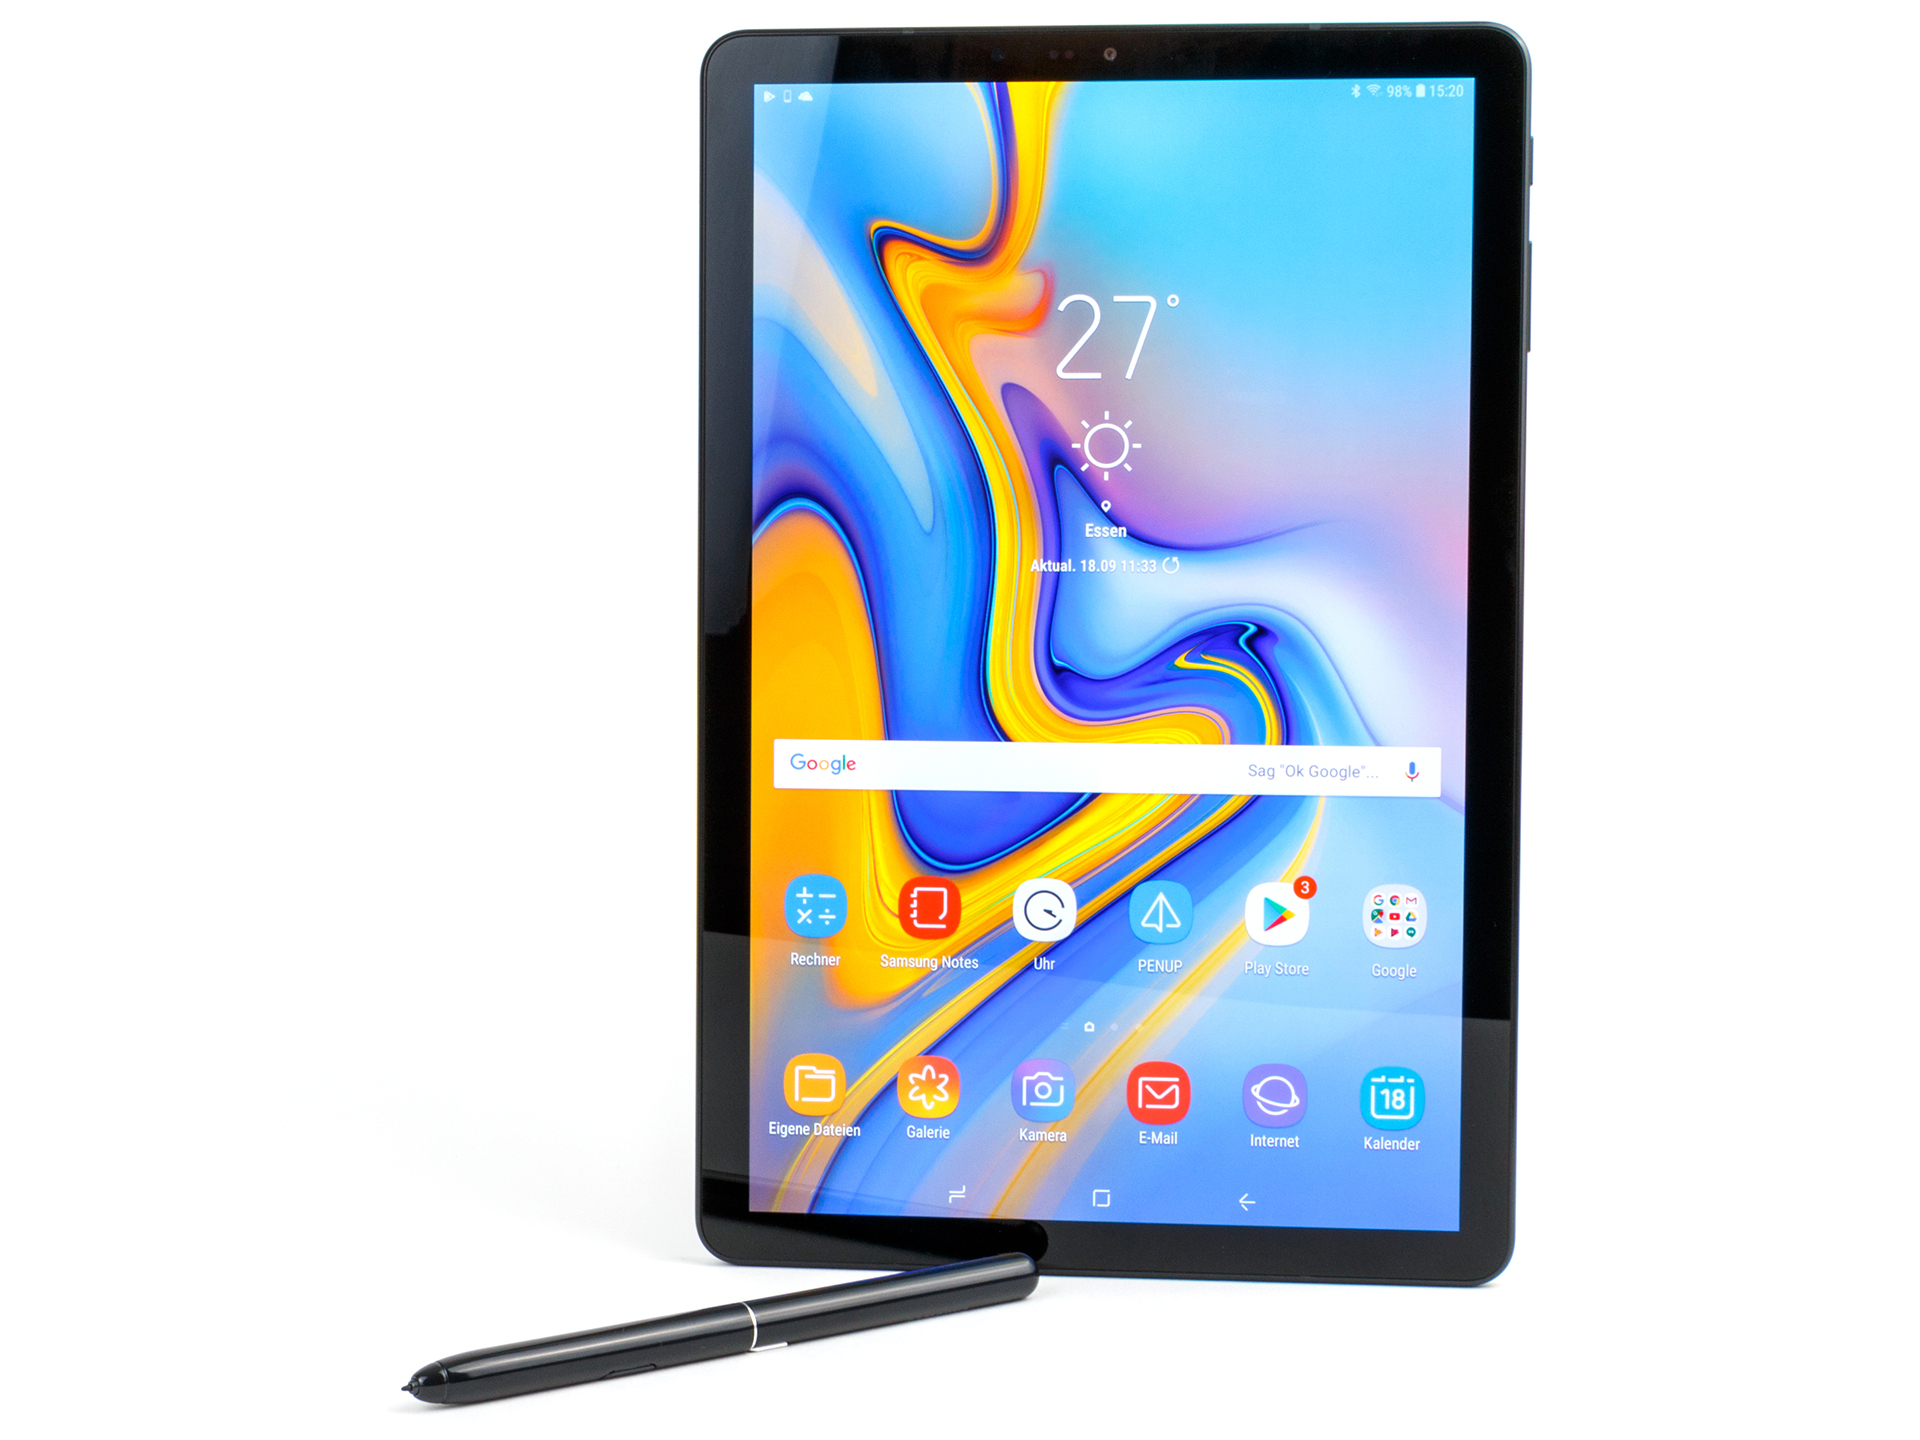 Preiswerte Tablets Test Samsung Galaxy Tab S4 Tablet Notebookcheck Tests